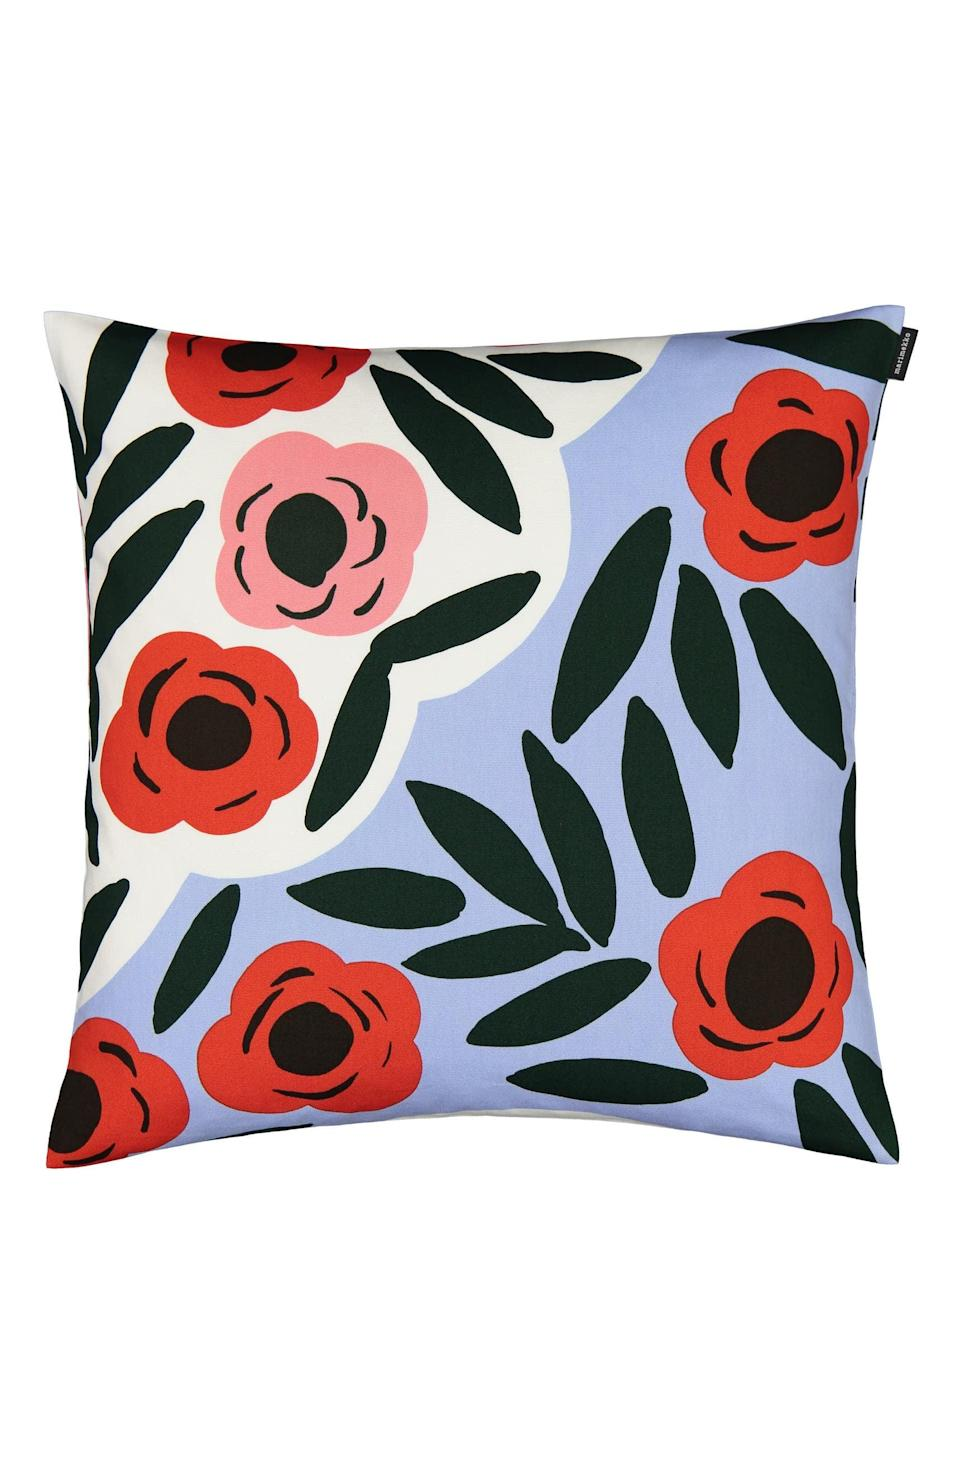 <p>We're always in the market for some new decor, and the <span>Marimekko Ruukku Ruukku Cushion Cover</span> ($27, originally $45) is too cute. It'll surely make any old sofa or bed feel like new.</p>